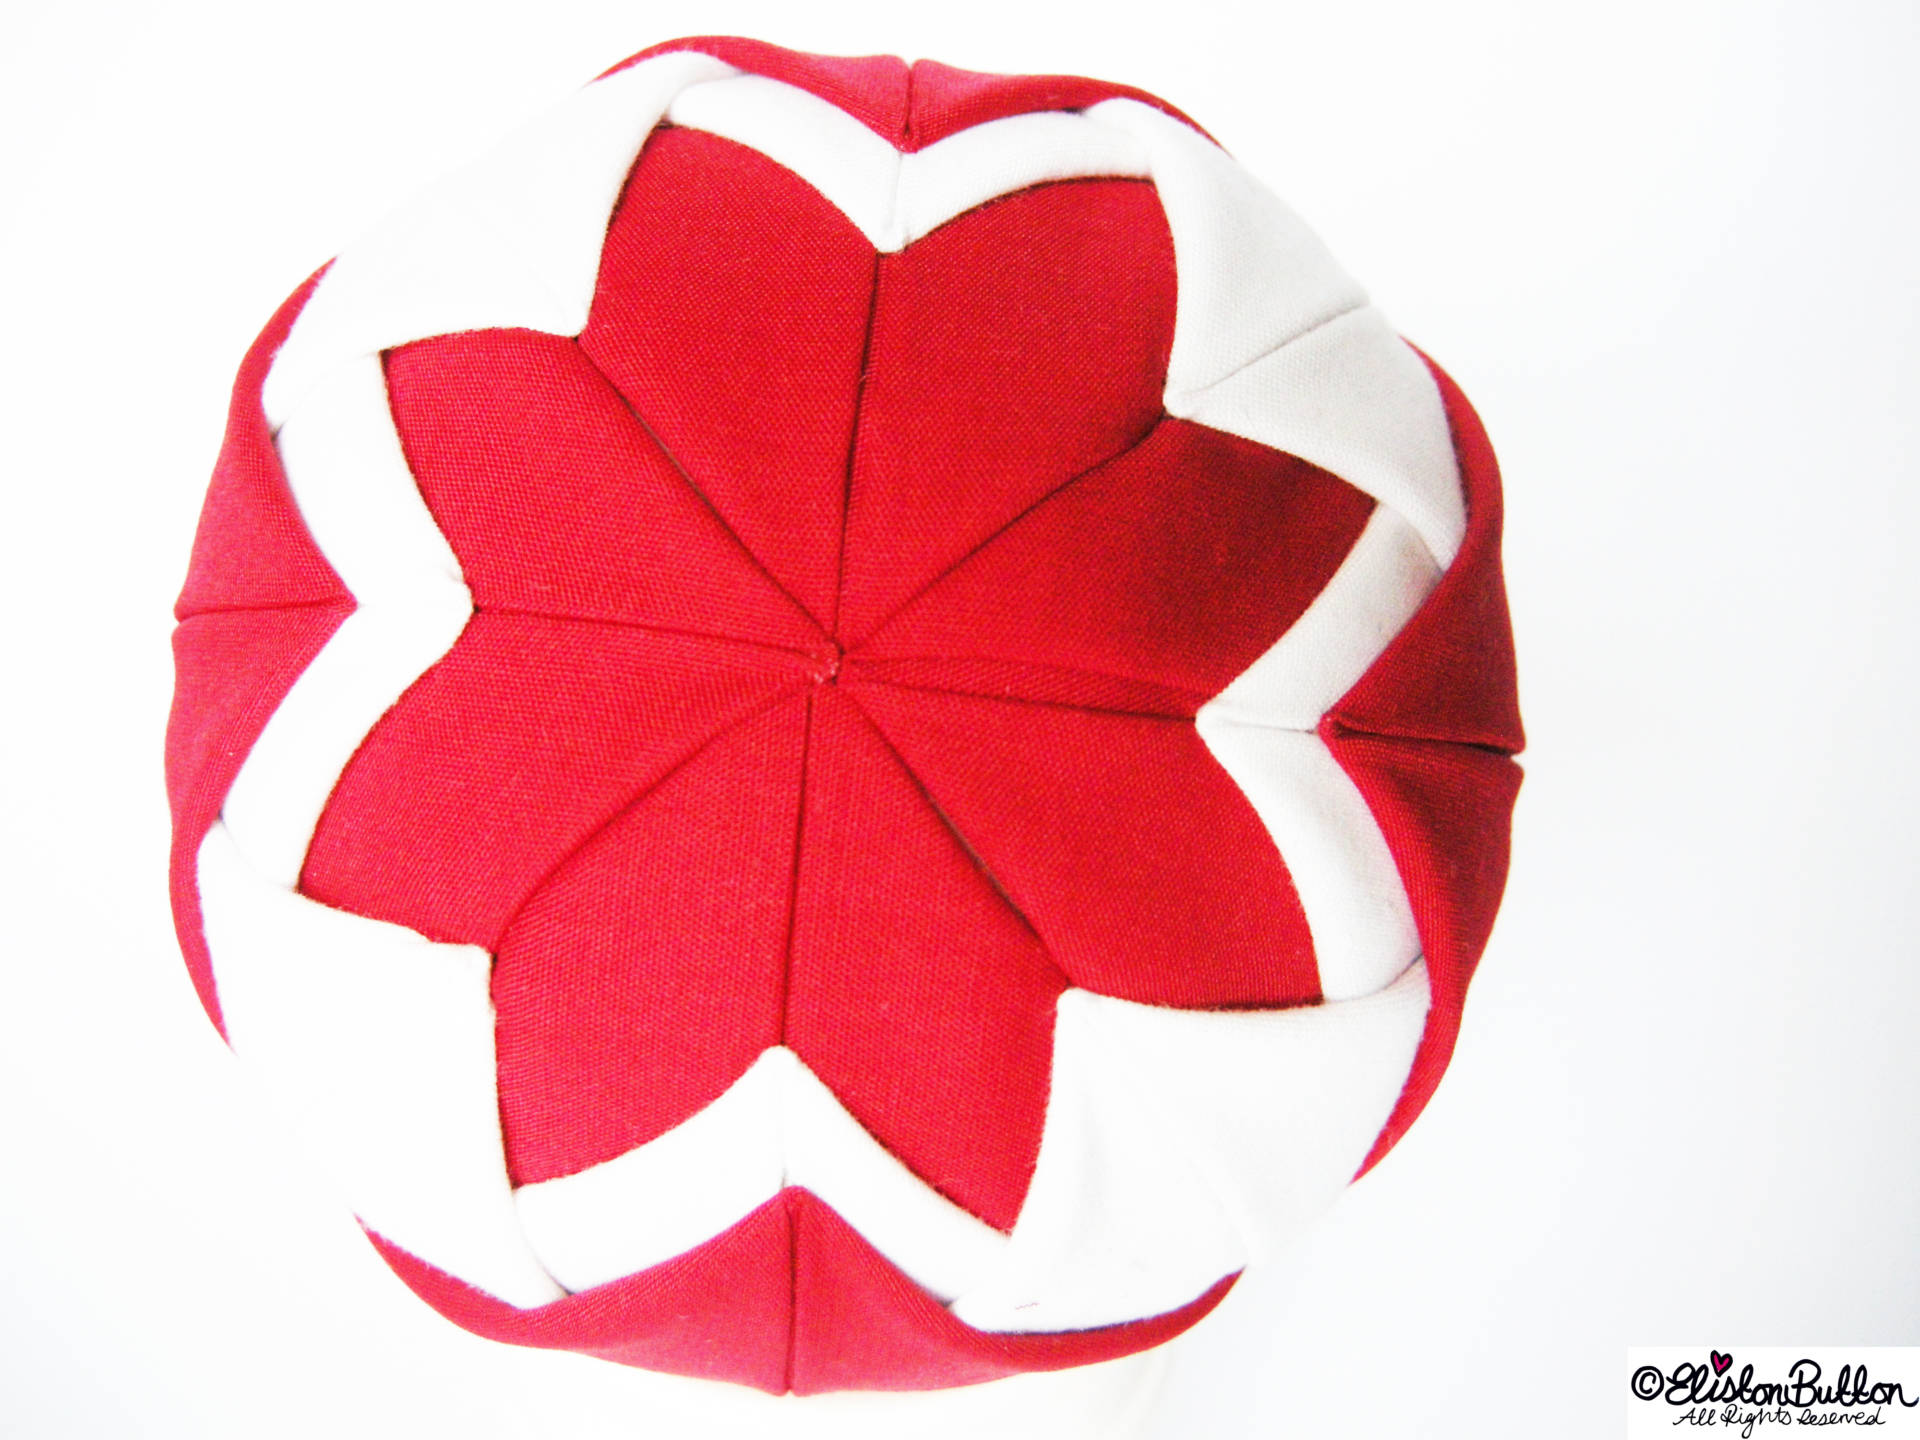 Red and White Quilted Fabric on the Ball - Quilted Christmas Baubles - A Tutorial at www.elistonbutton.com - Eliston Button - That Crafty Kid – Art, Design, Craft & Adventure.